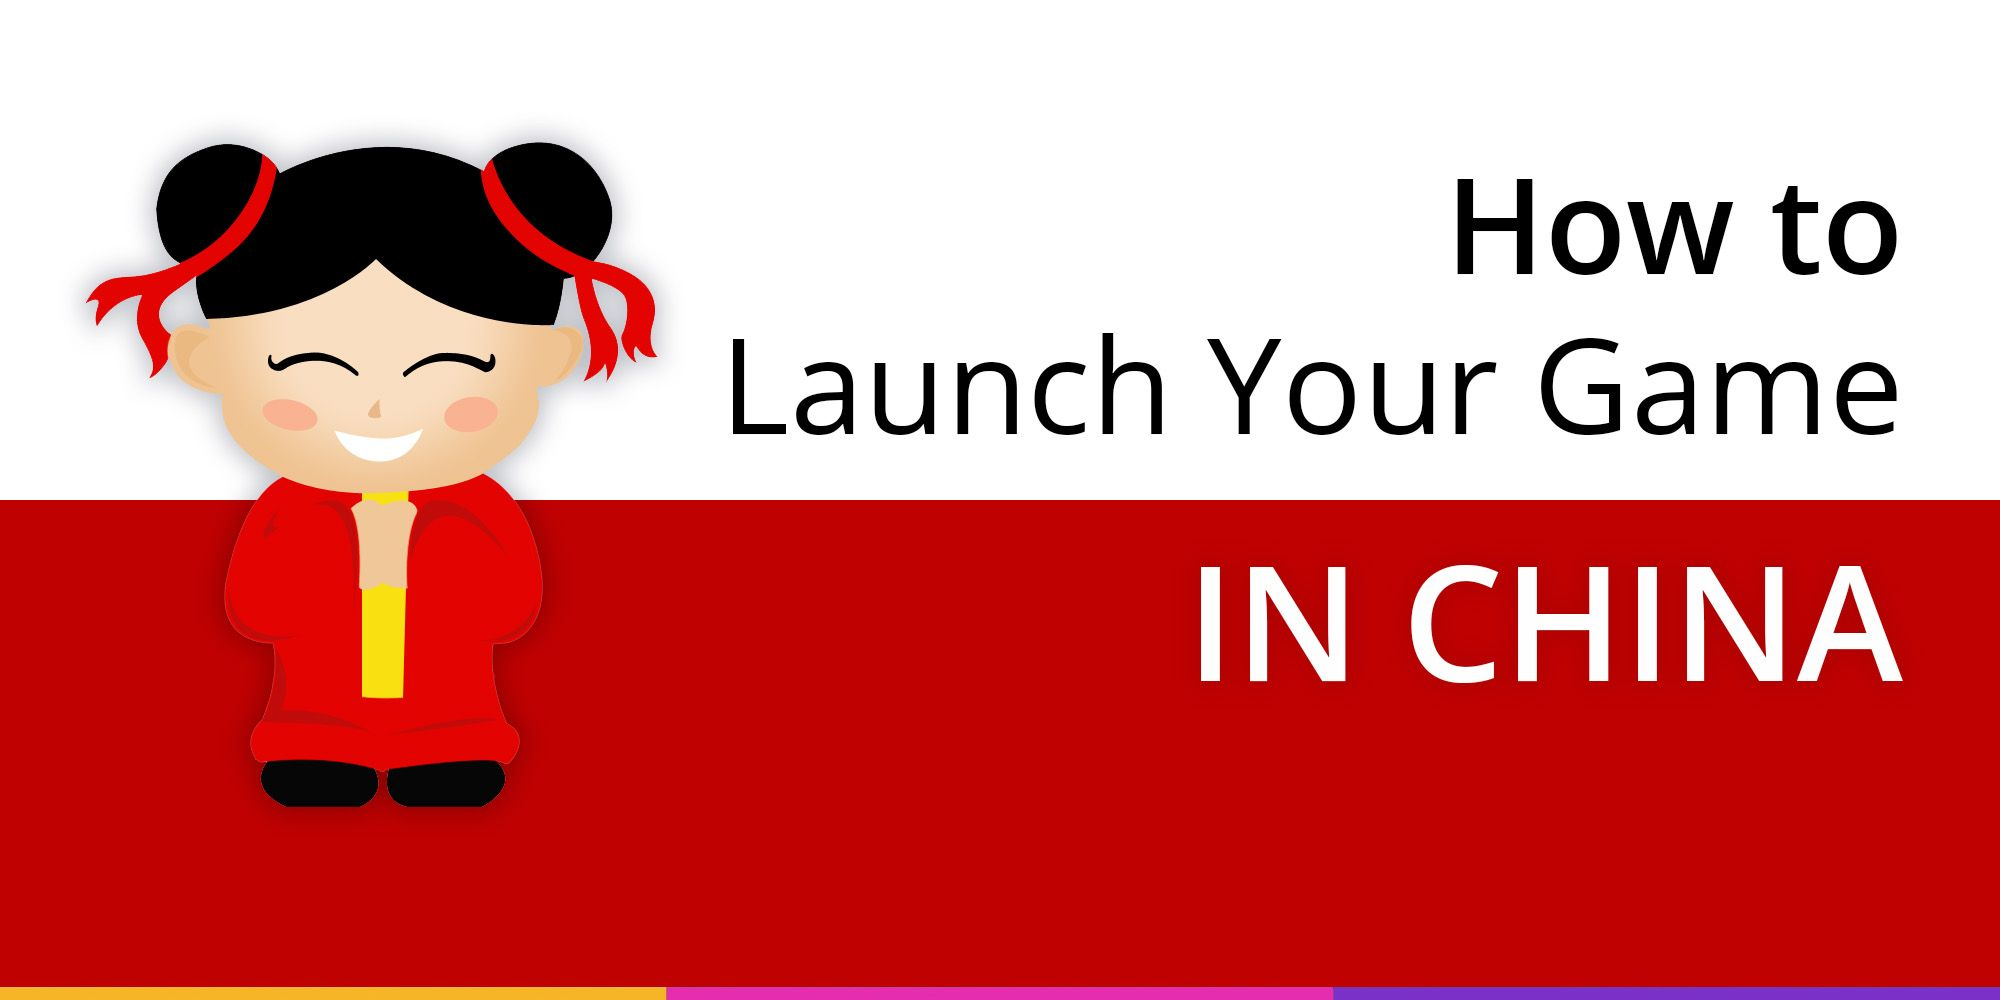 4 steps to launch your game in China